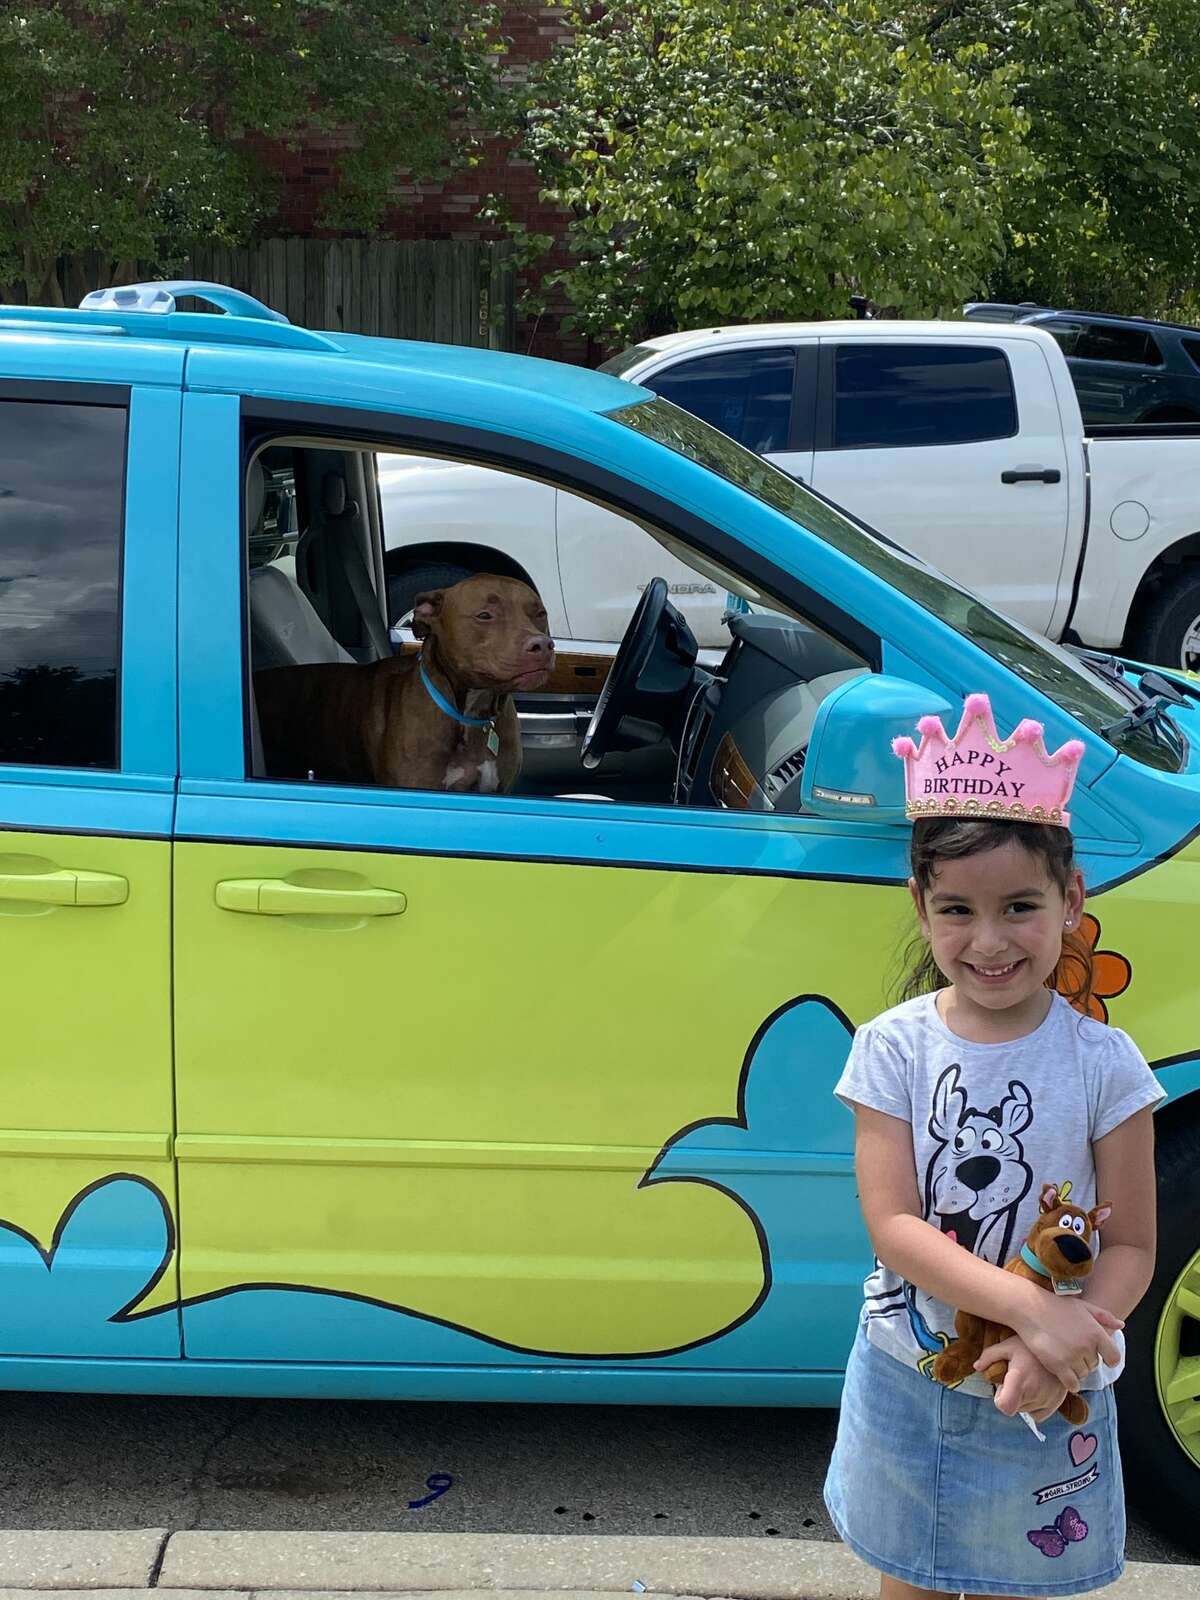 Before Pearson turned it into a little free library, the mother of two said she used her mystery van for birthday parties and corporate events. But, mostly, she said she drove it around to drop her children off at school and run errands.